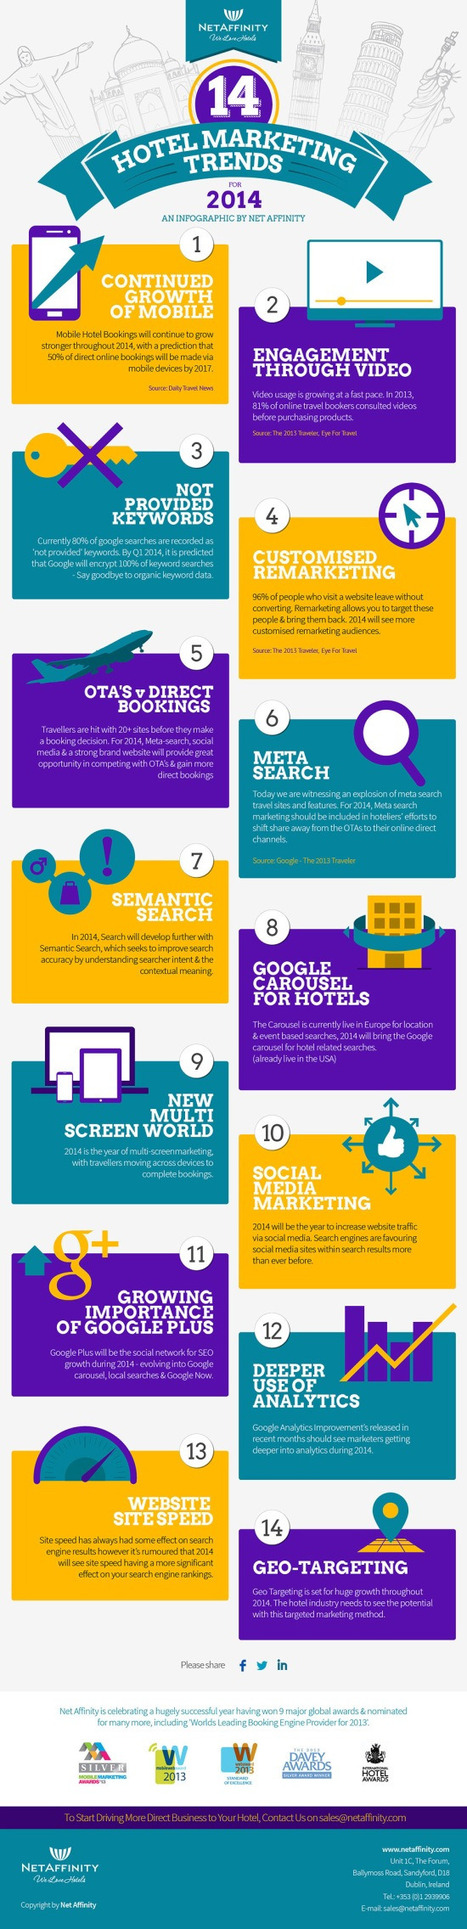 14 Digital Marketing Trends for Hotels in 2014 [INFOGRAPHIC] | e-Tourism | Scoop.it